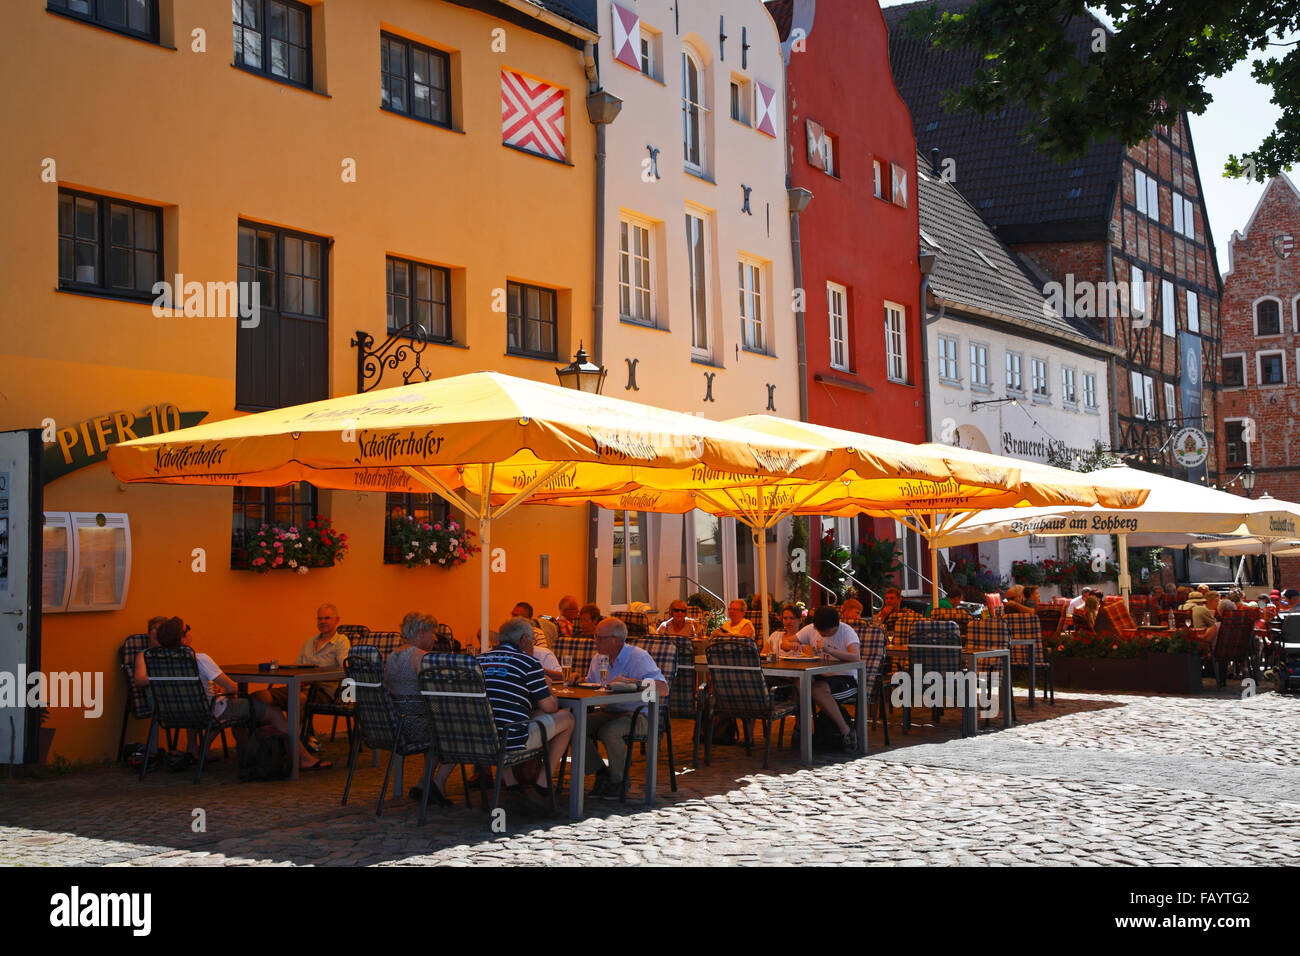 Restaurants at LOHBERG near old harbour, Wismar, Baltic Sea, Mecklenburg Western Pomerania, Germany, Europe - Stock Image